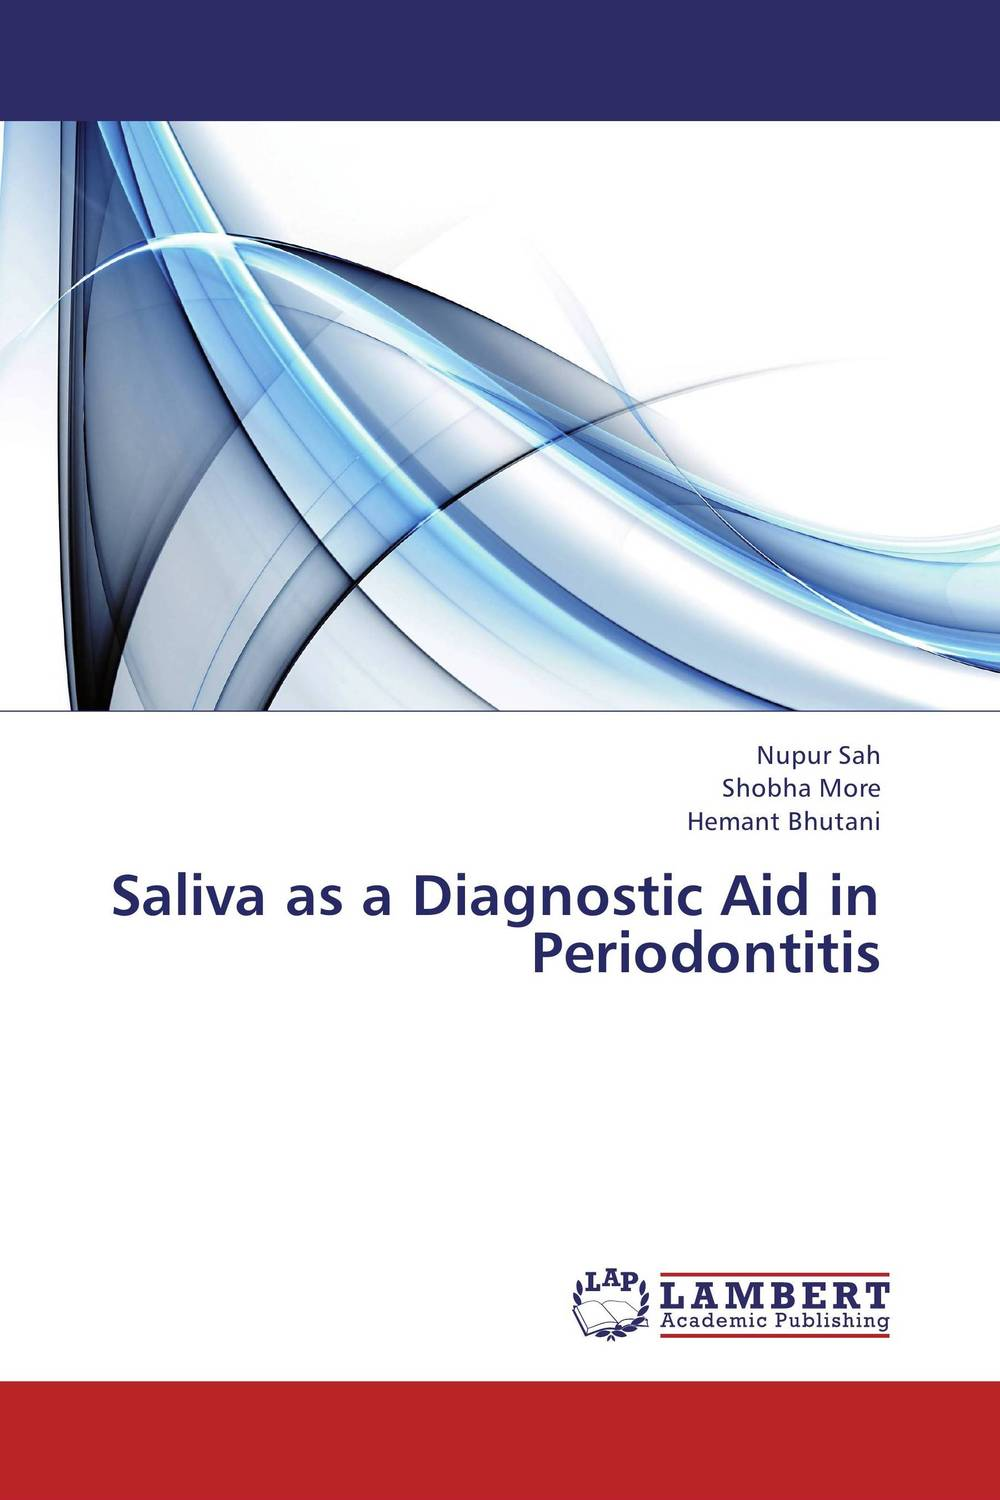 Saliva as a Diagnostic Aid in Periodontitis new arrival classification of periodontal diseases teeth model dental patient communication model process of periodontal disease